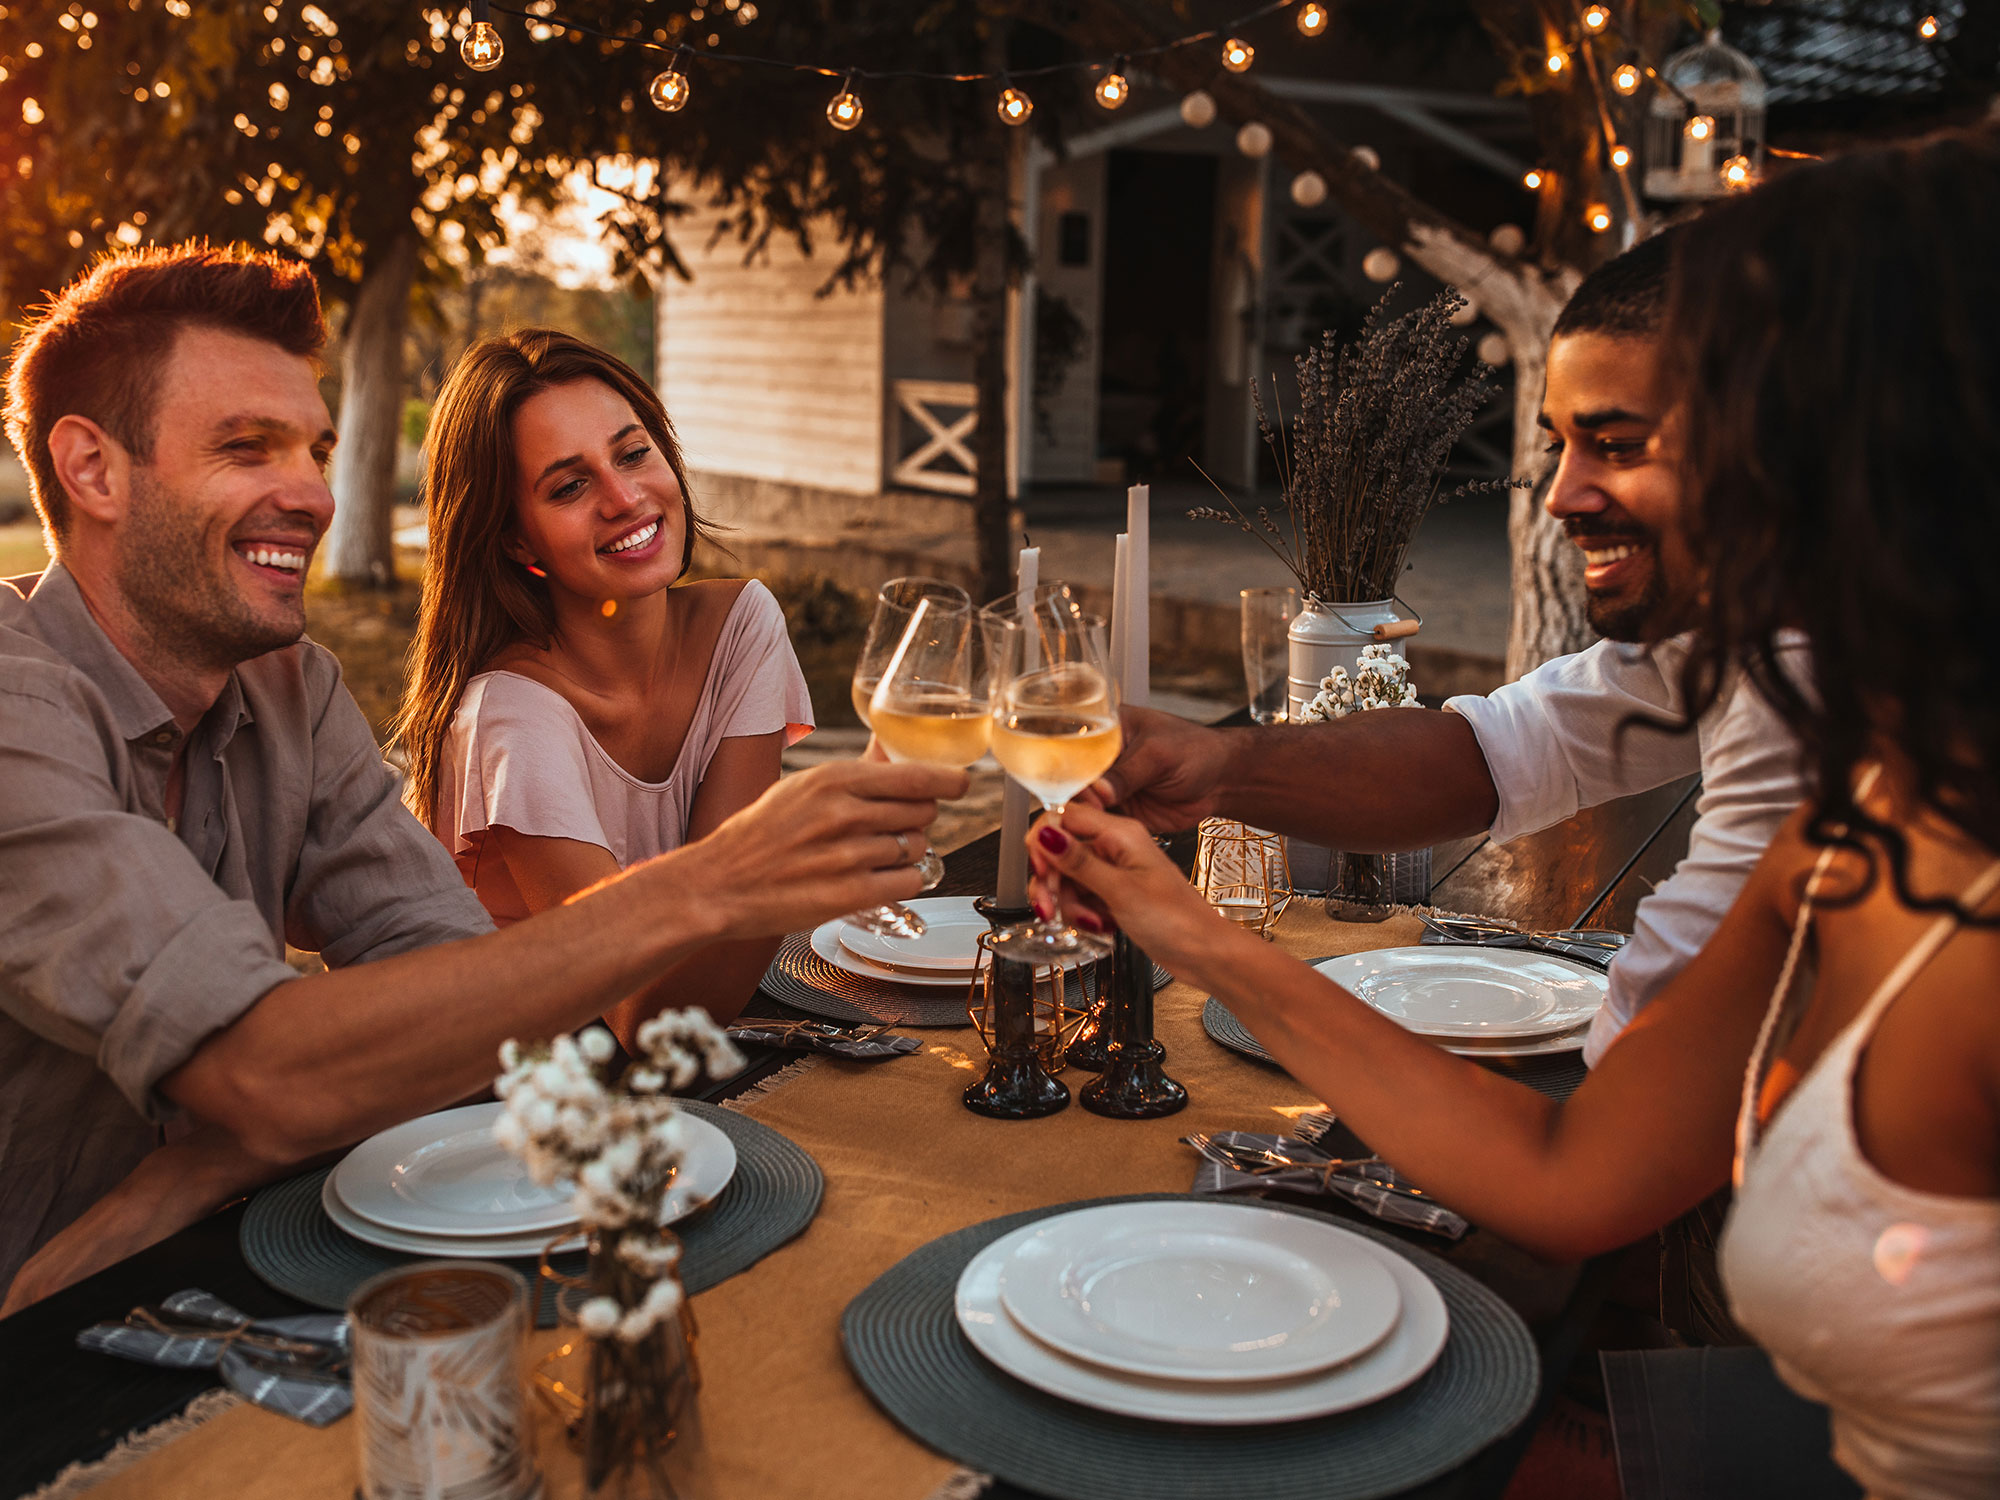 Diverse friends cheers with wine glasses at outdoor restaurant